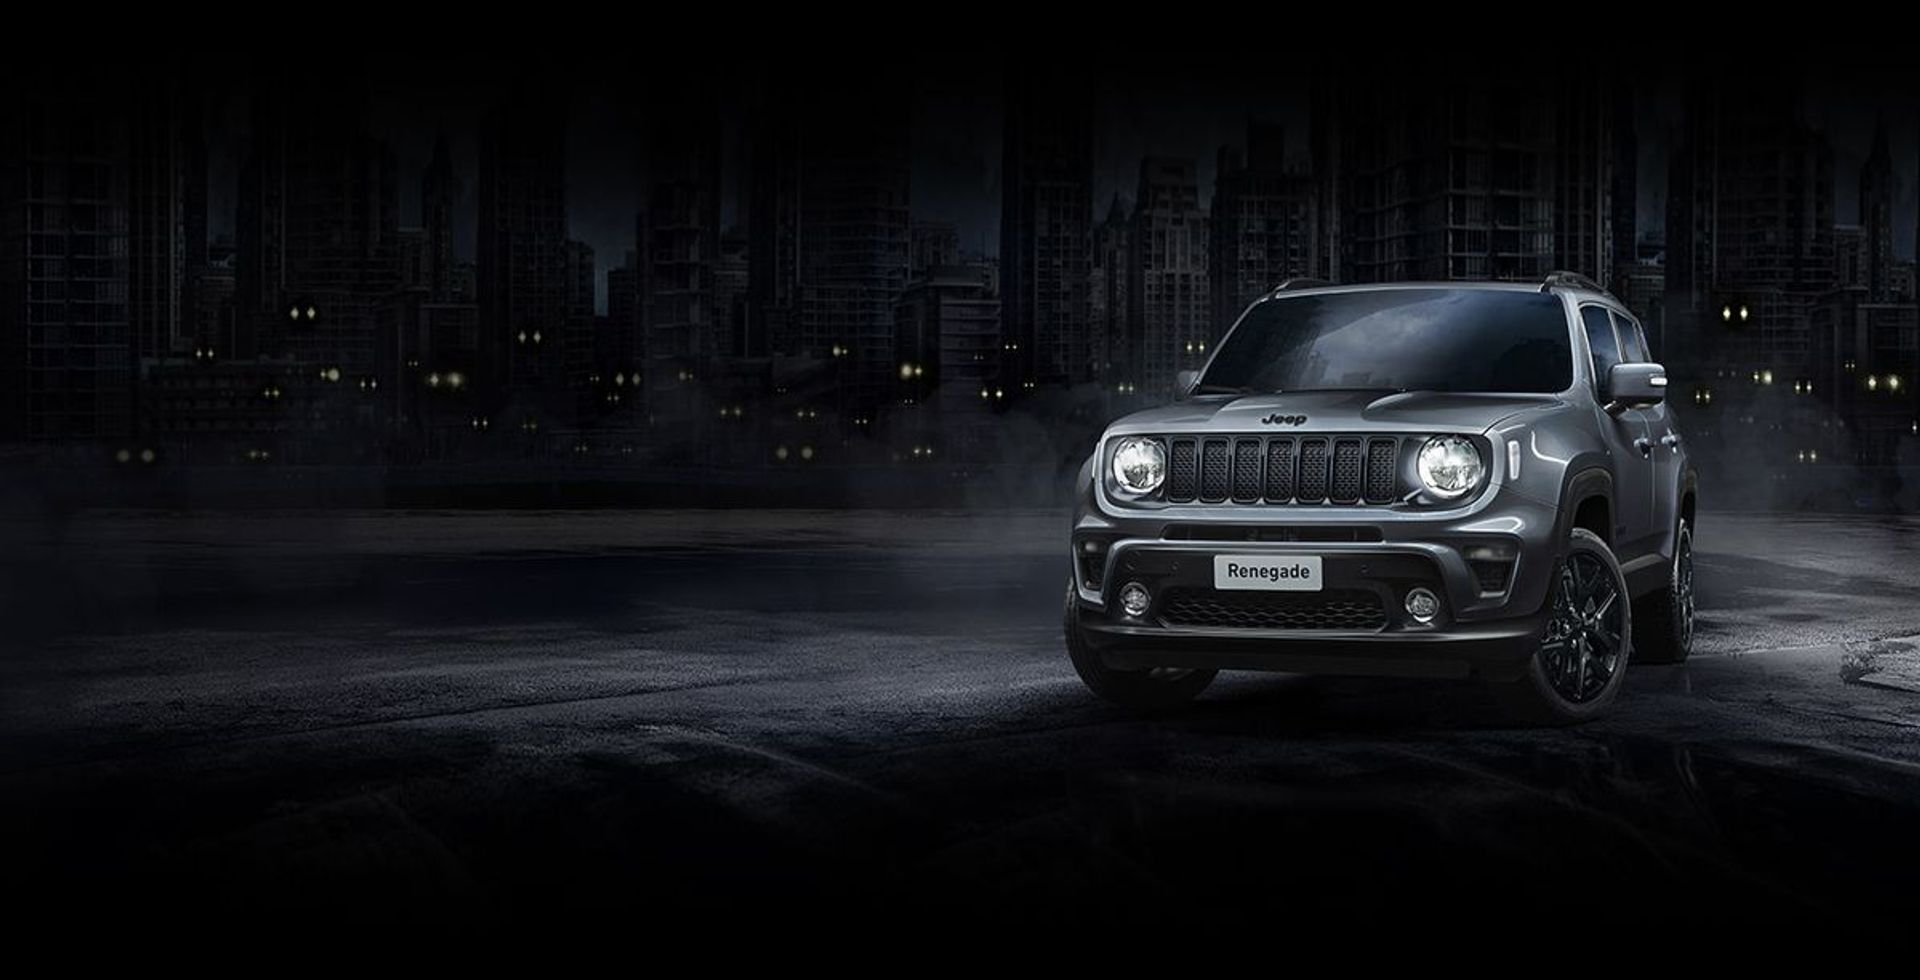 Jeep Renegade S image